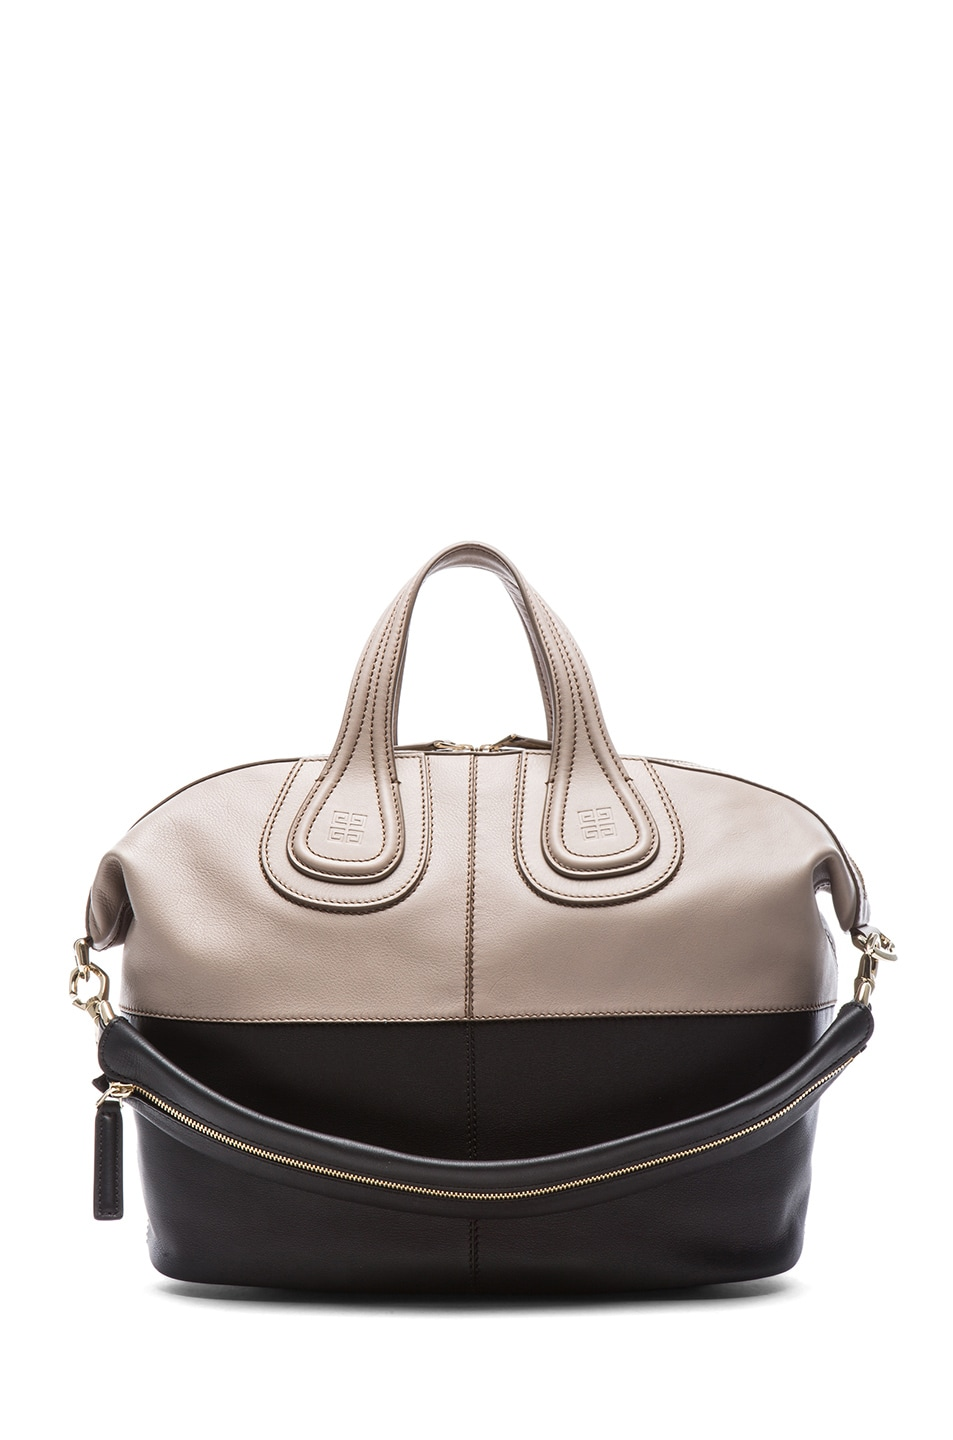 d3807865d2 Image 1 of Givenchy Medium Bi Color Nightingale in Taupe